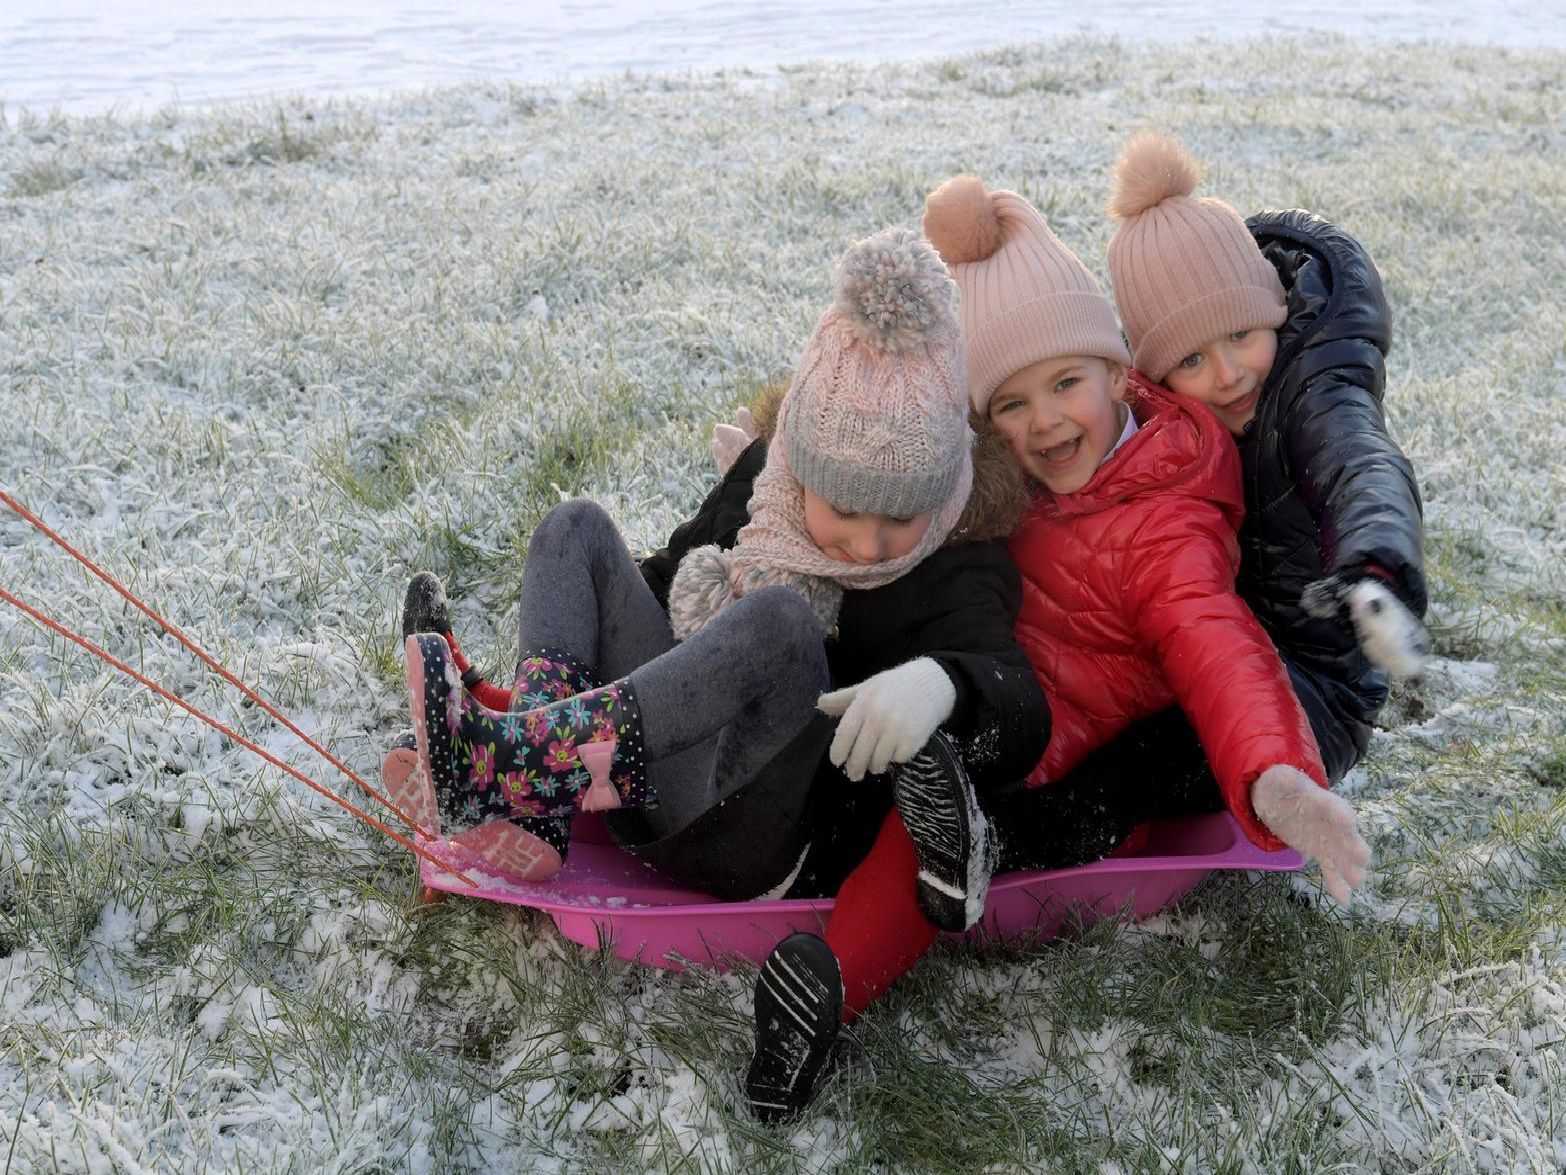 Freya Burns, Skye and Tilly Sutcliffe on the sled. Photo: Neil Cross